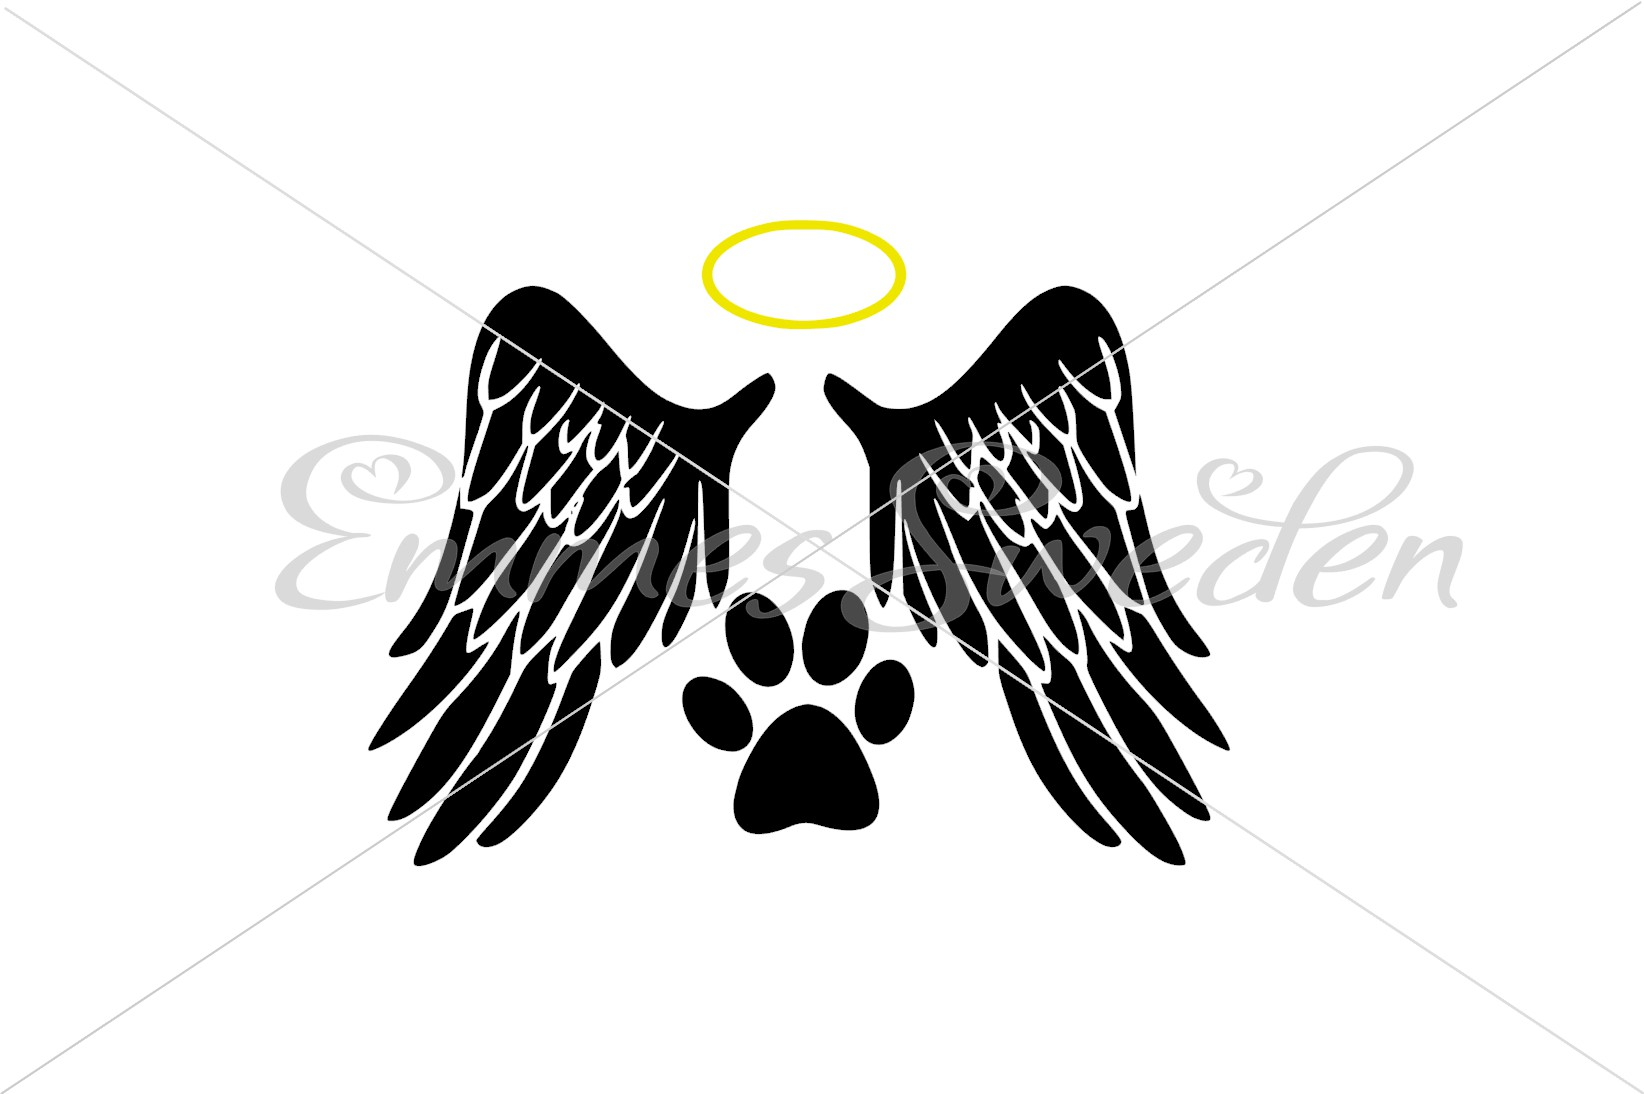 Download Free Angel Dog Graphic By Emmessweden Creative Fabrica for Cricut Explore, Silhouette and other cutting machines.